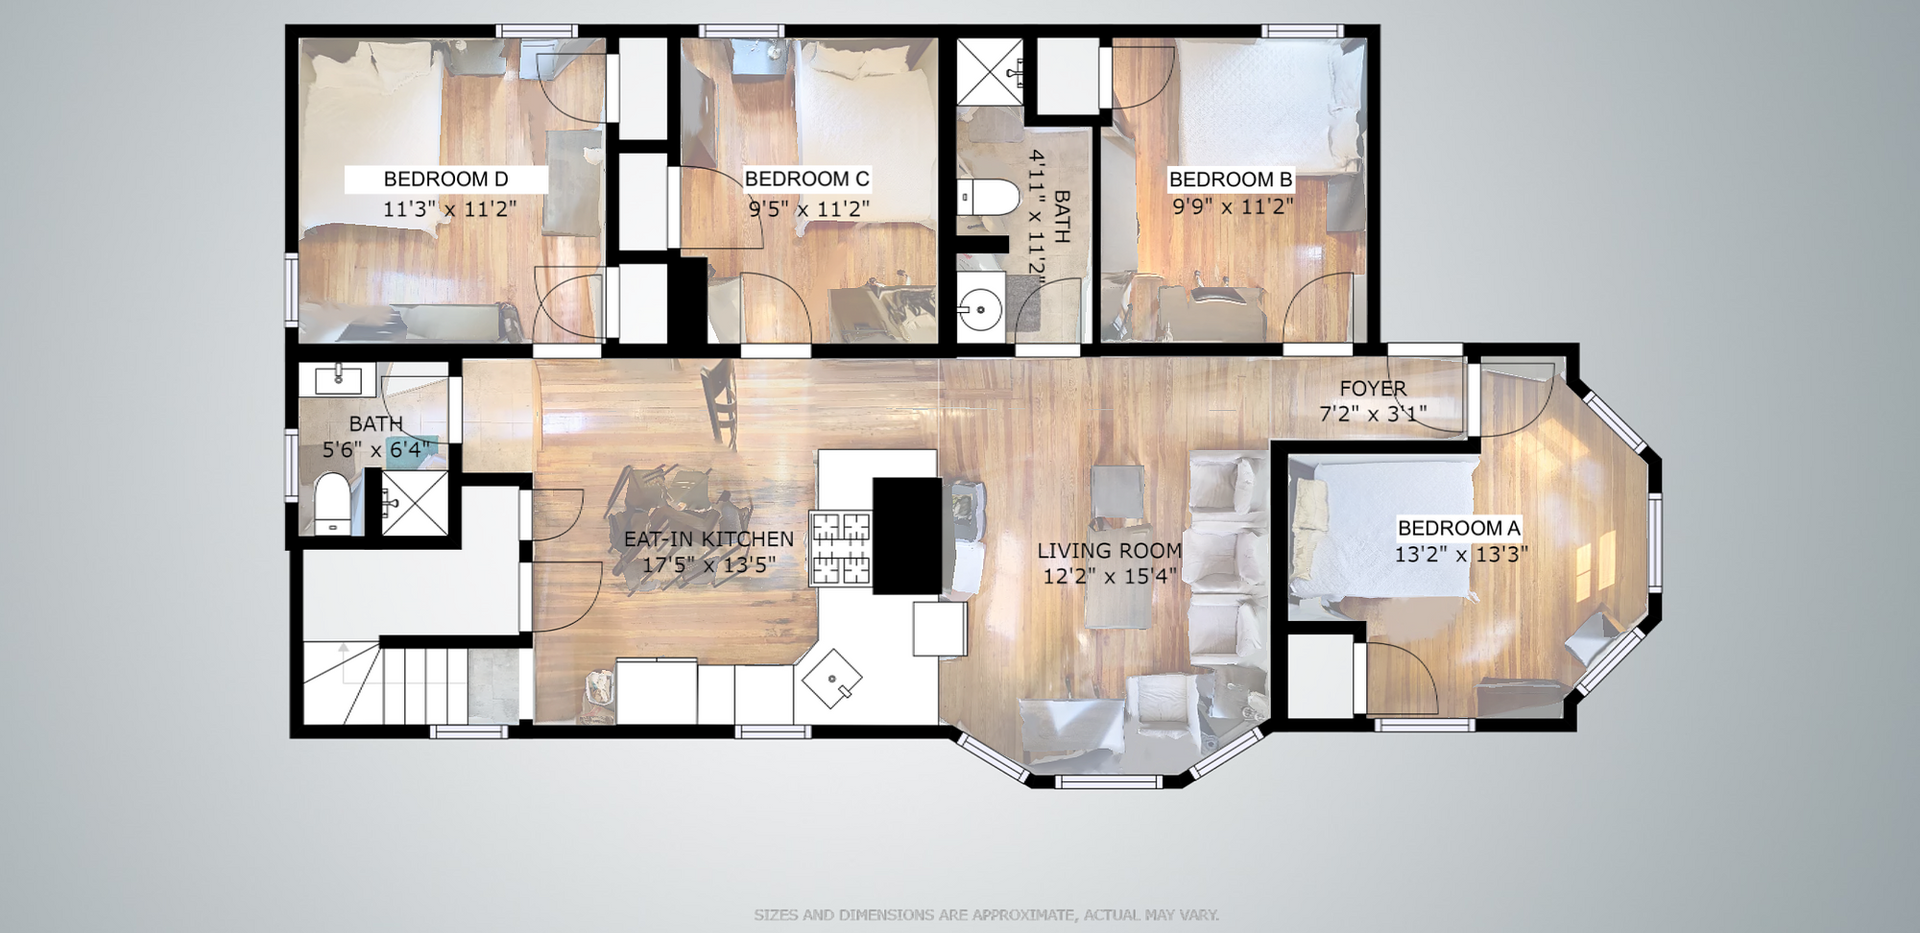 1st, 2nd, 3rd Floor Floorplan